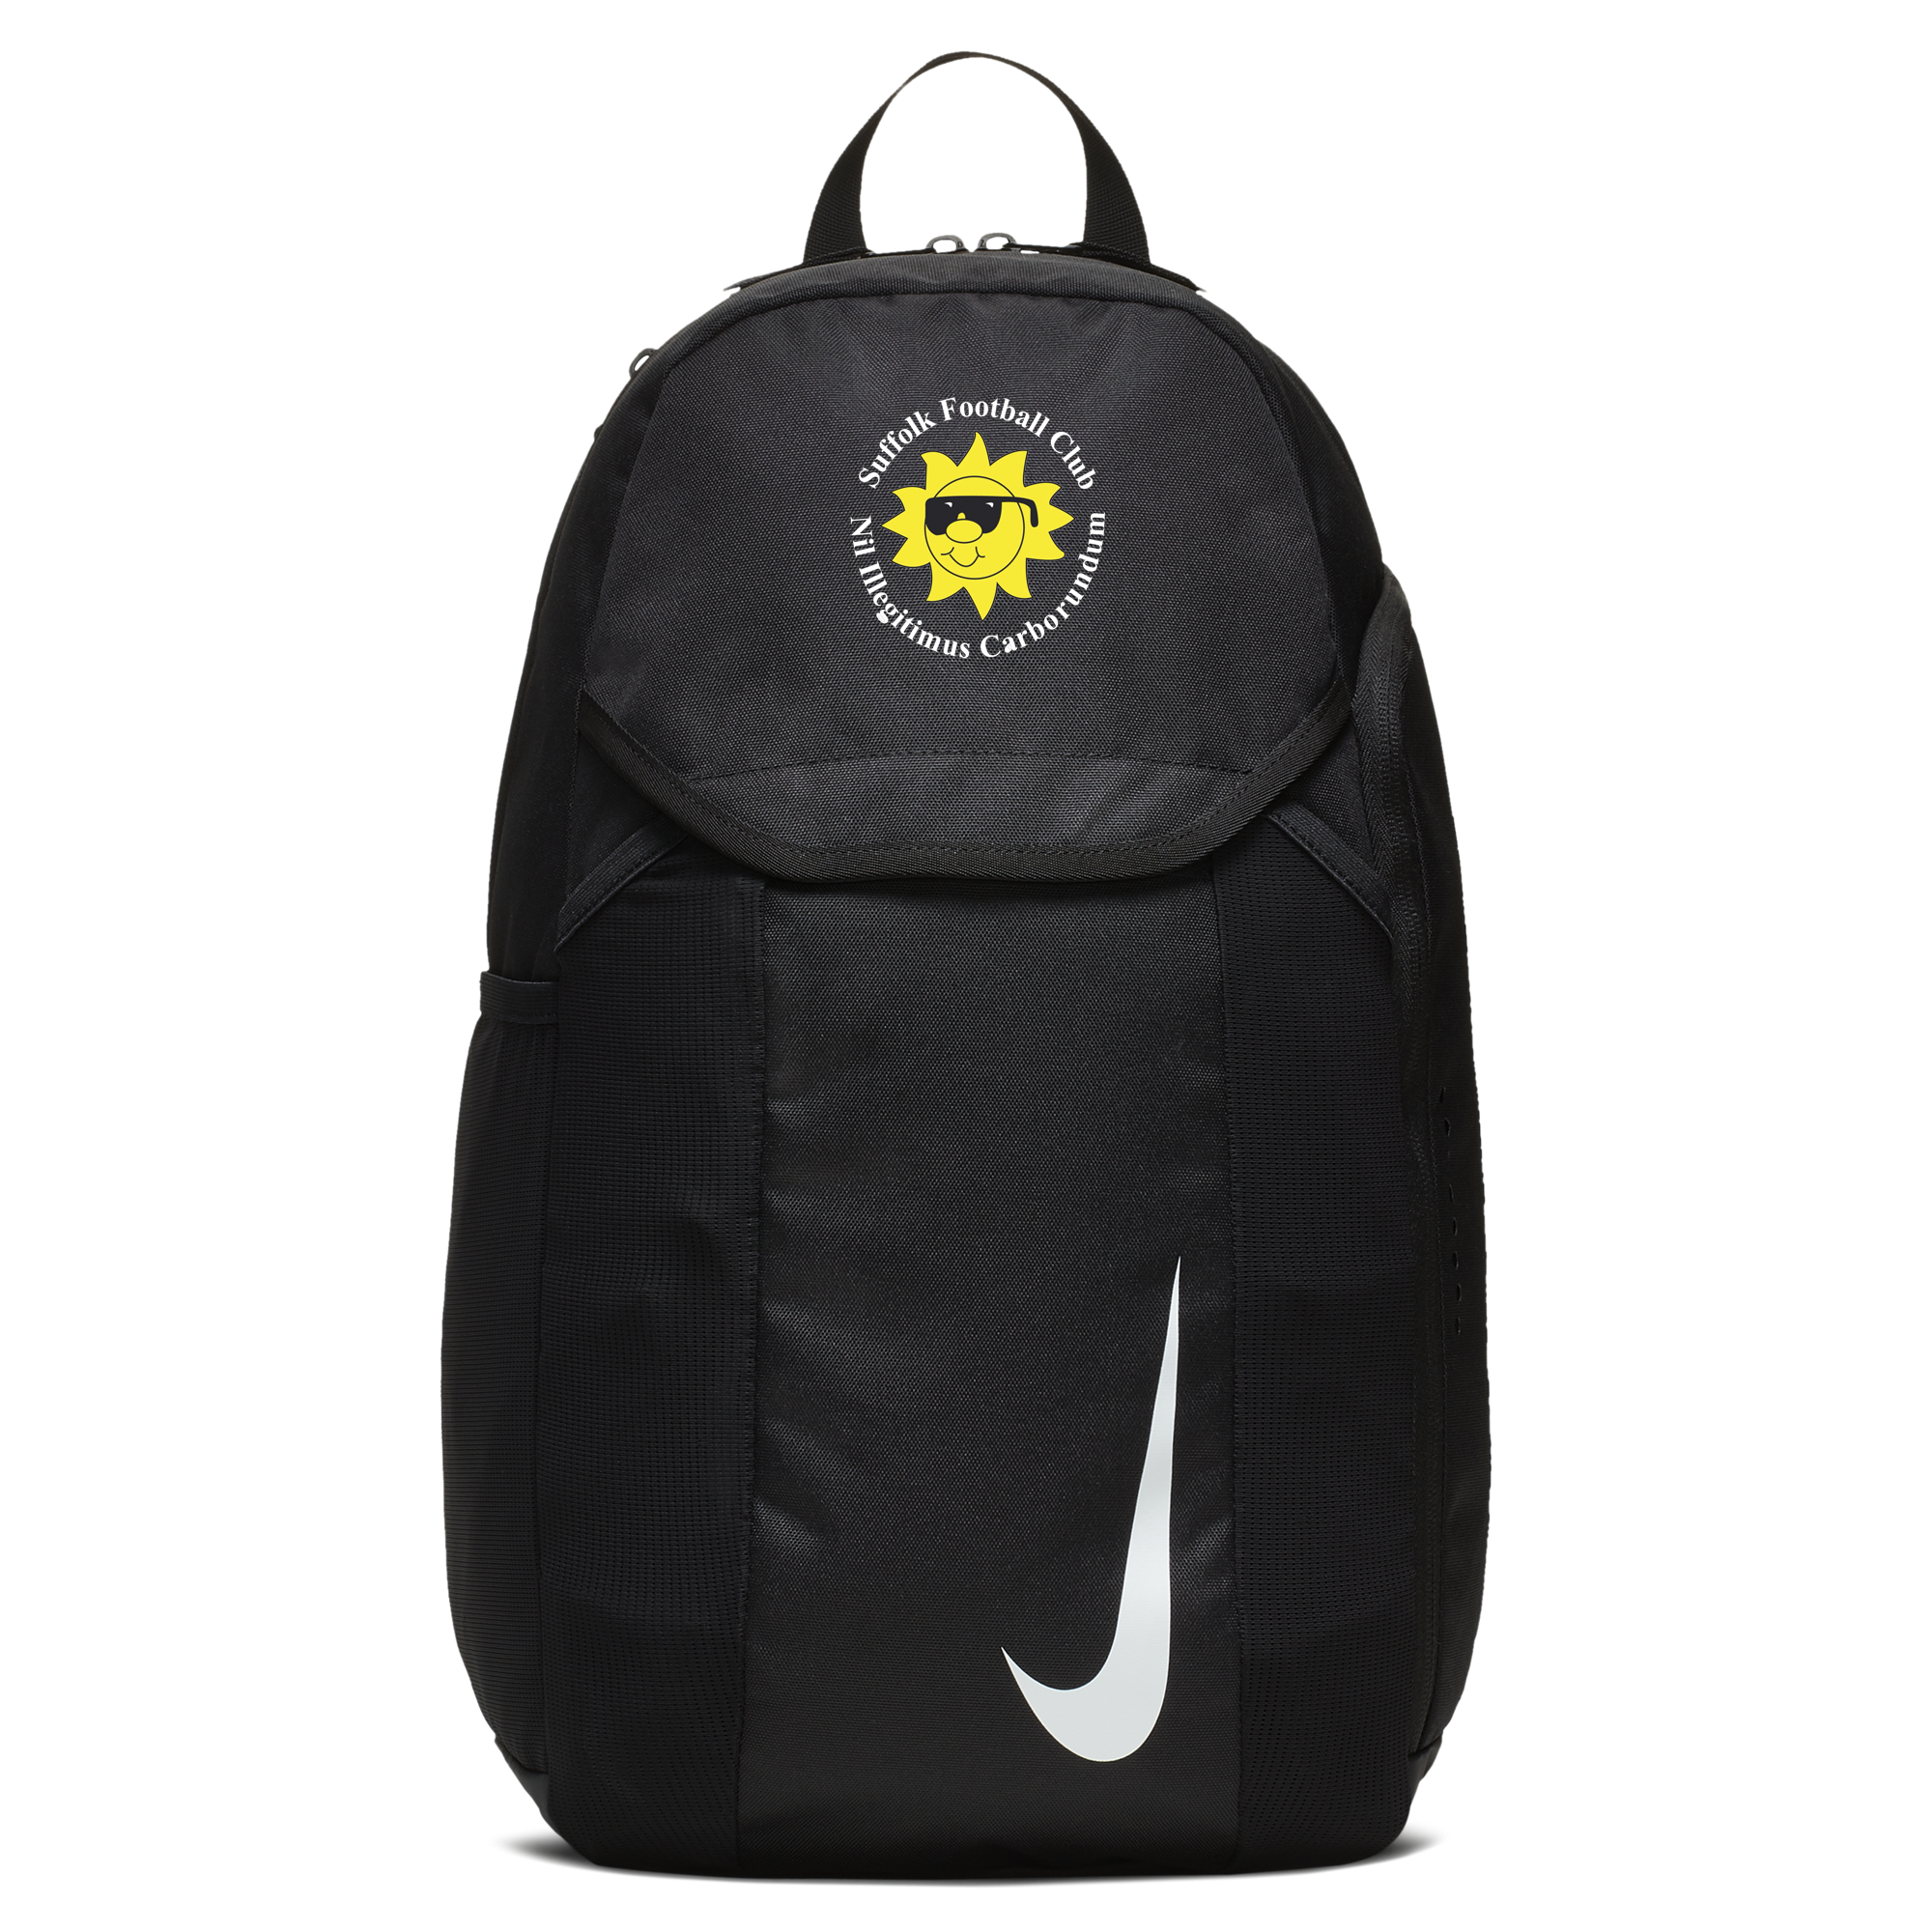 suffolk fc backpack 38293 p